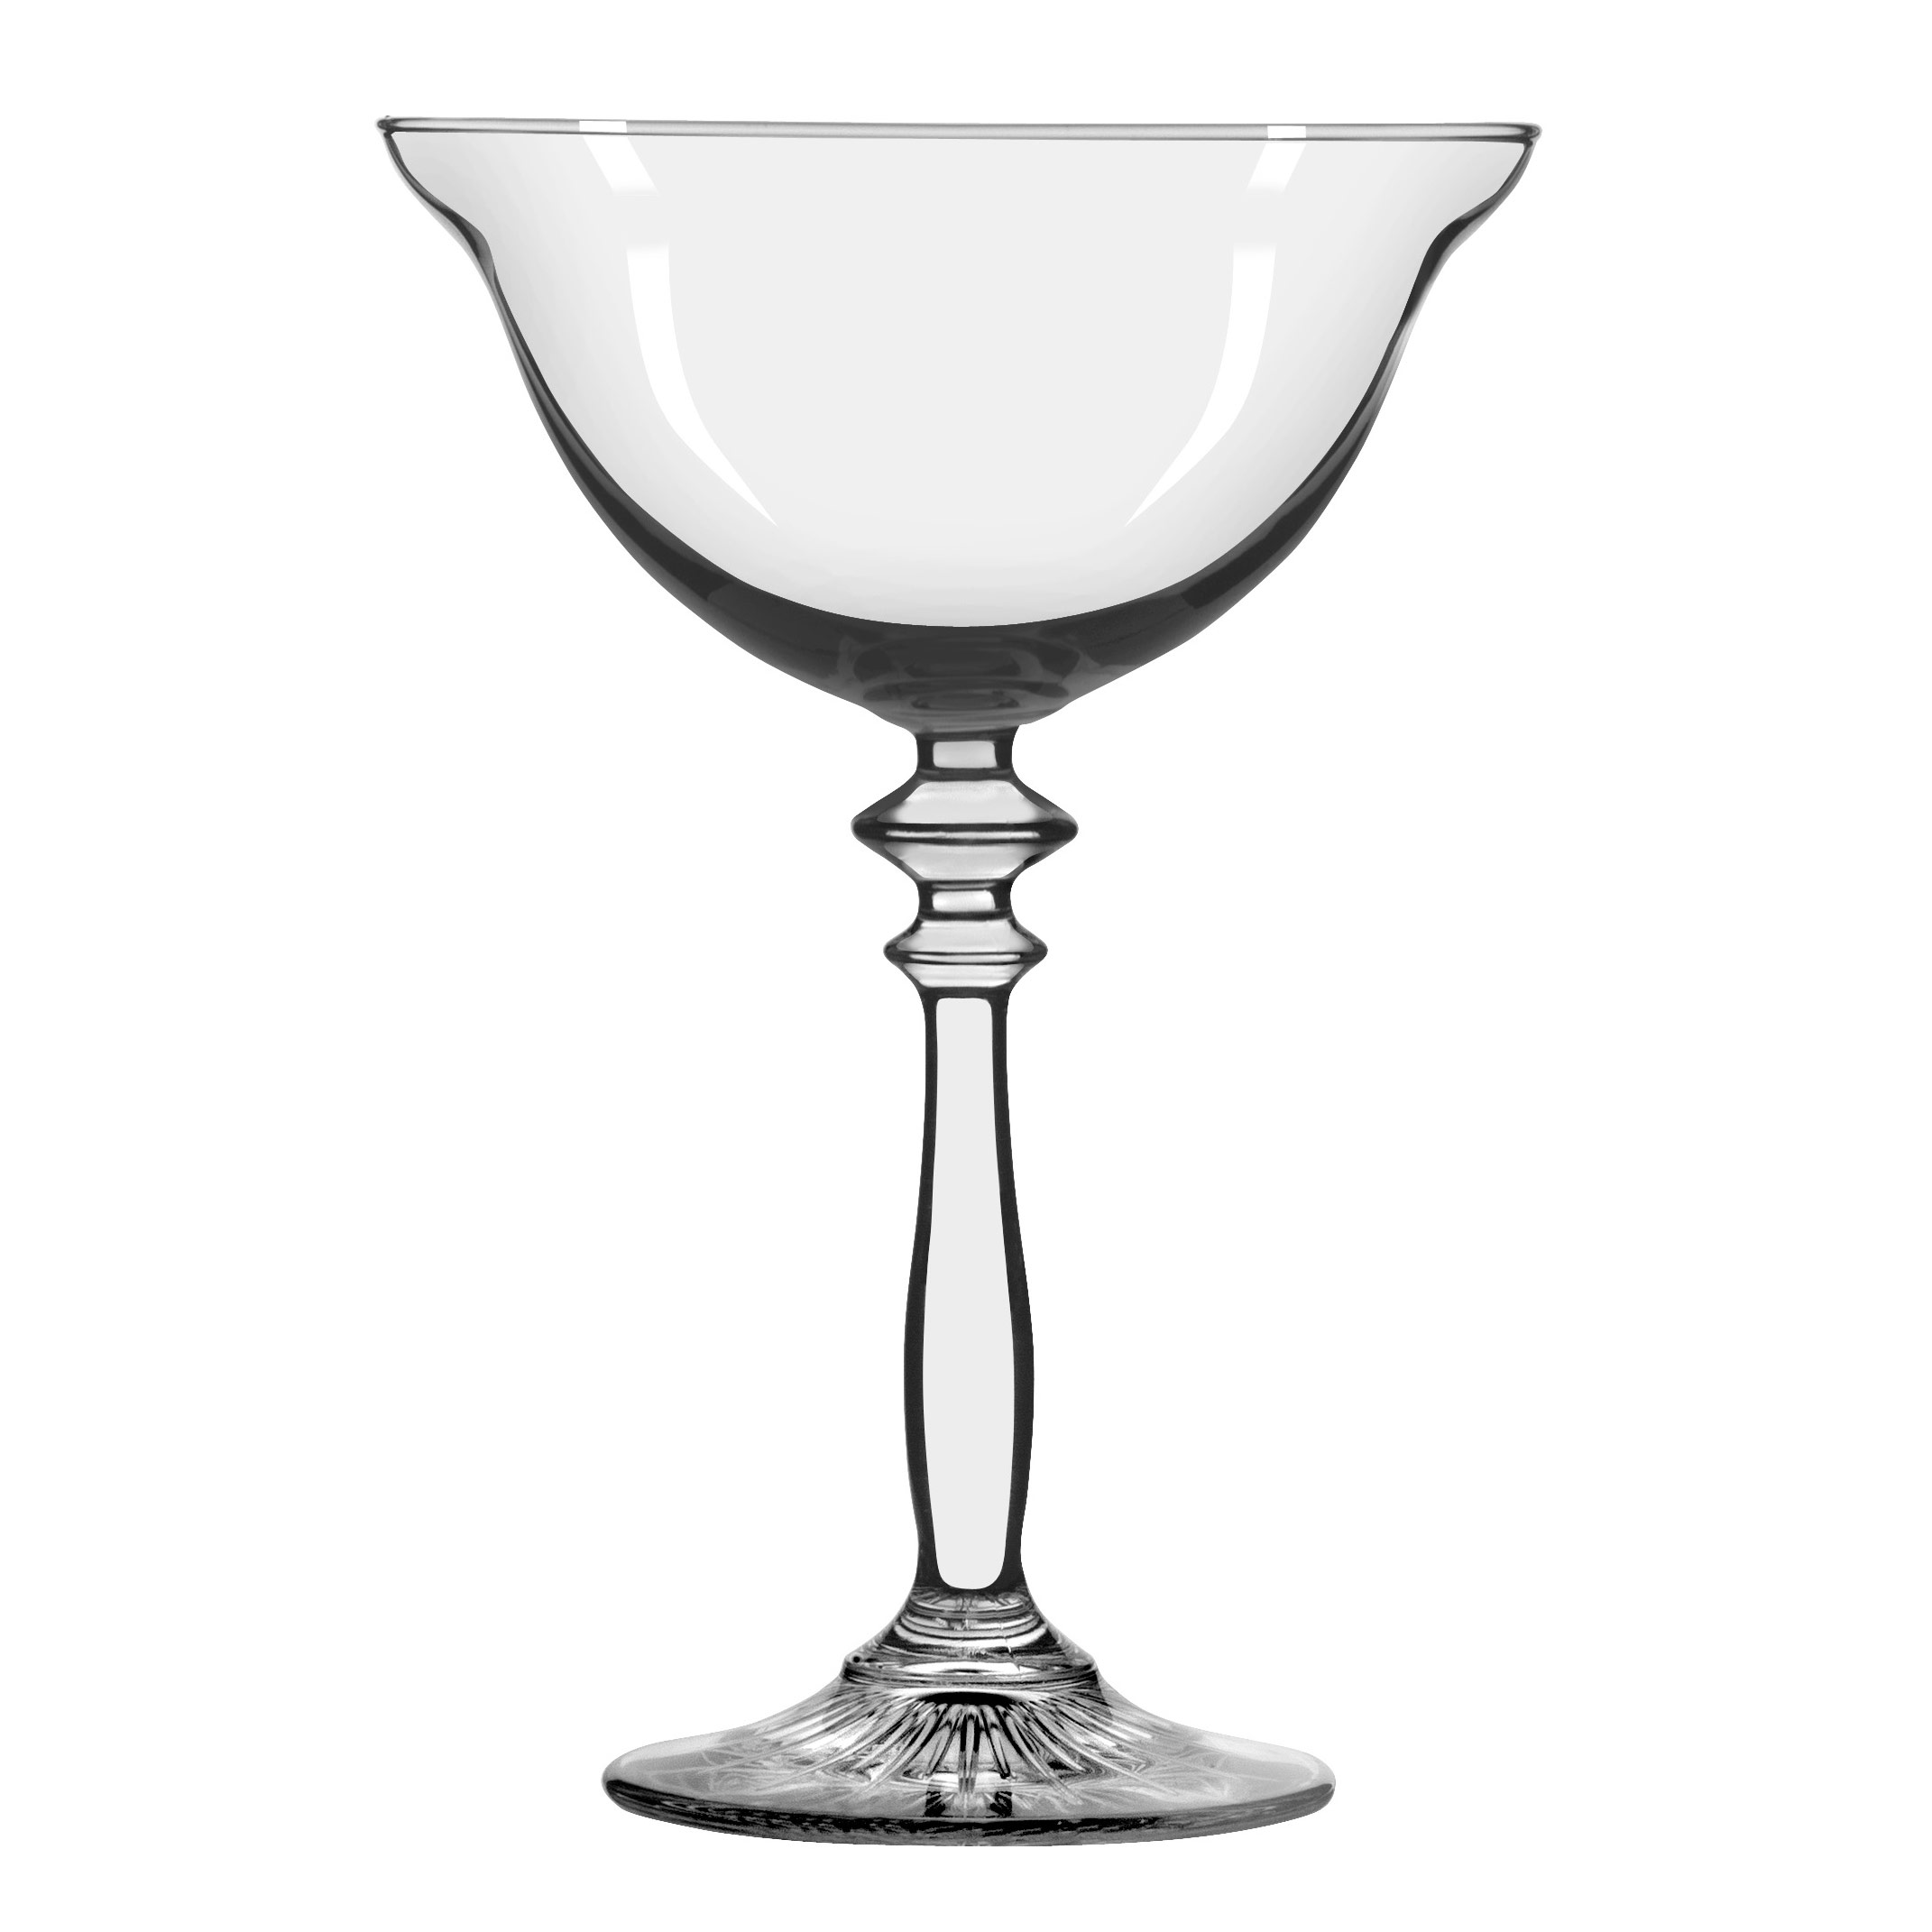 Libbey Glass 501407 glass, cocktail / martini